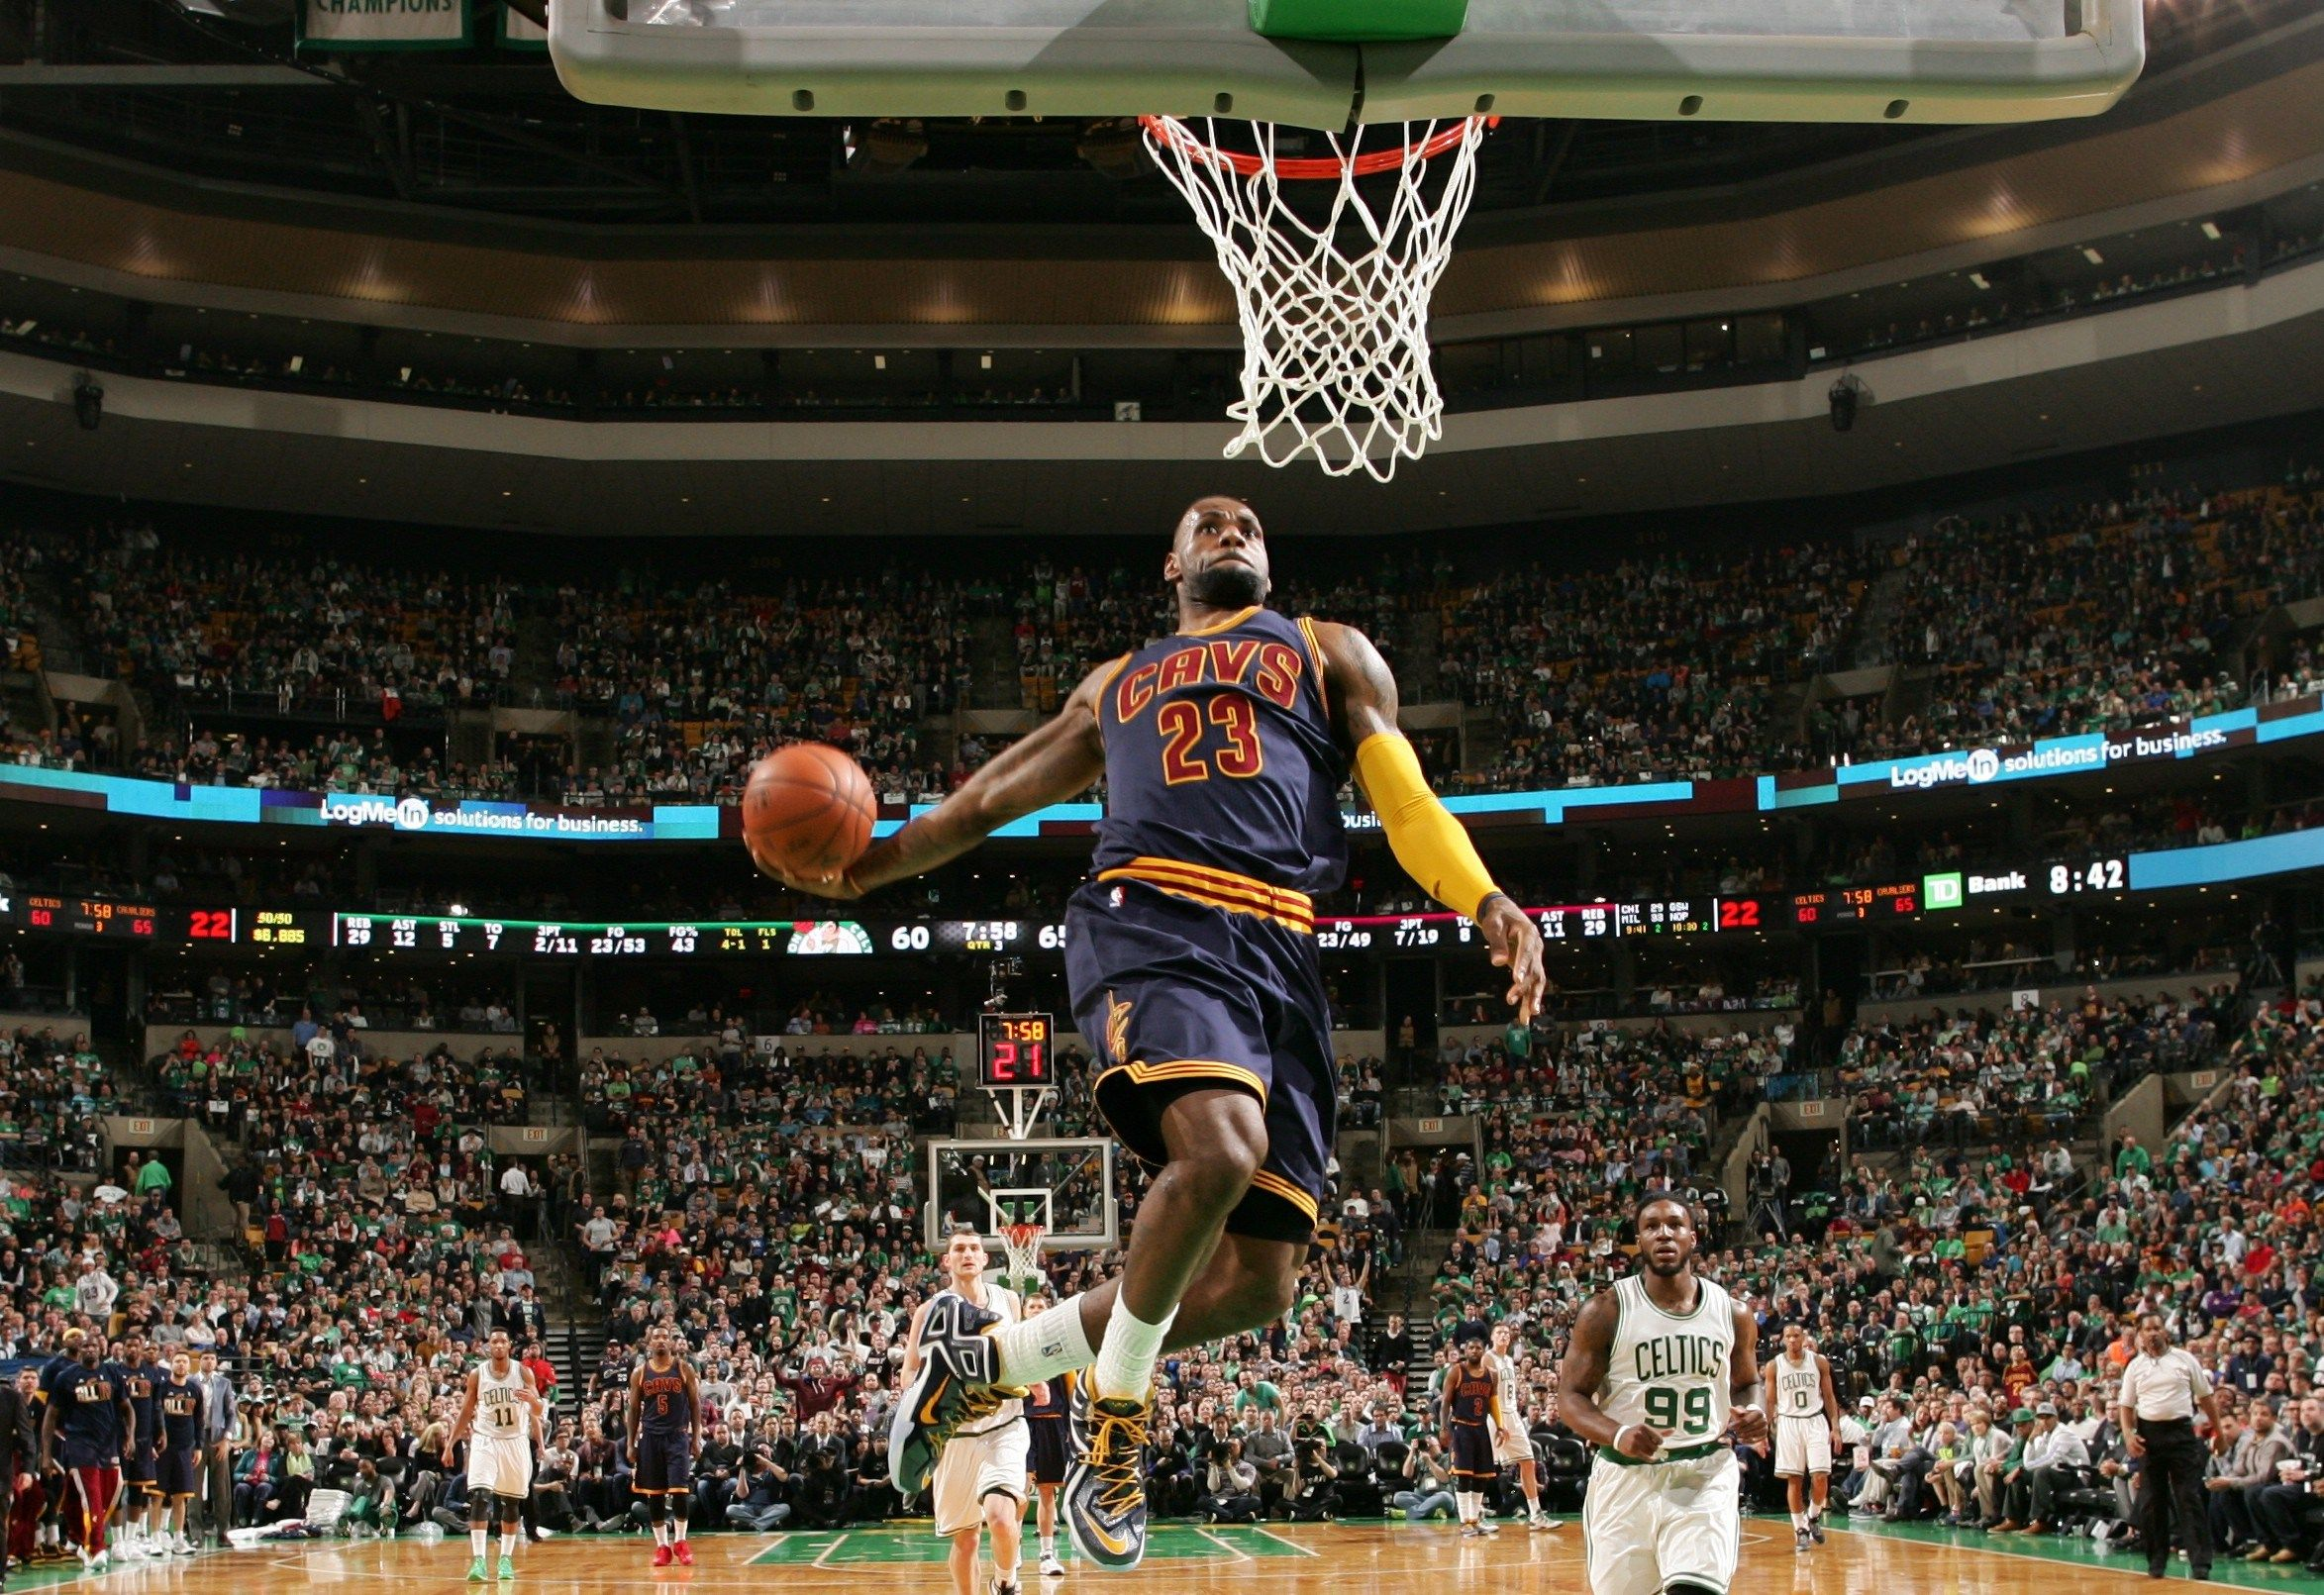 Image For Lebron James Dunk Wallpaper Full Hd I14ev Deportes